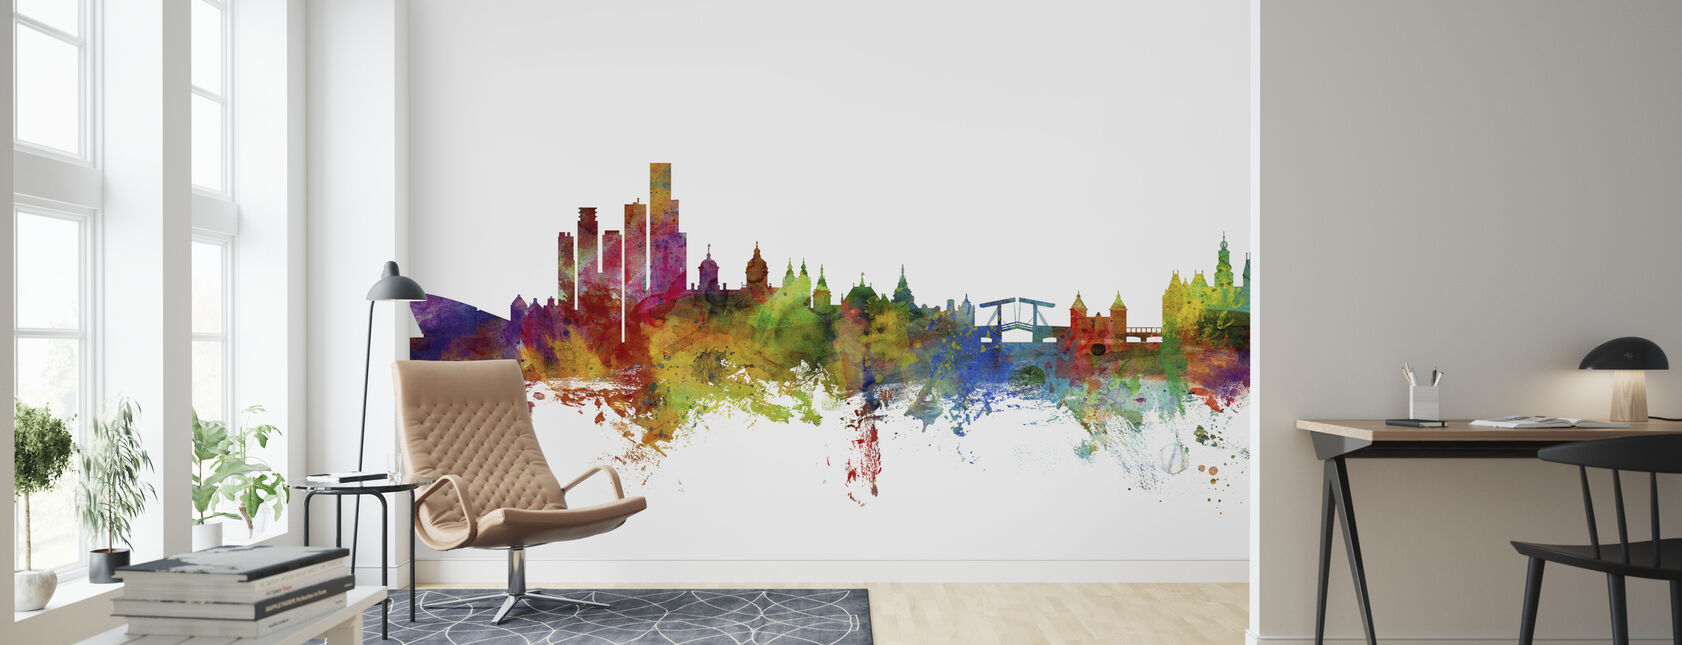 Amsterdam Skyline - Wallpaper - Living Room